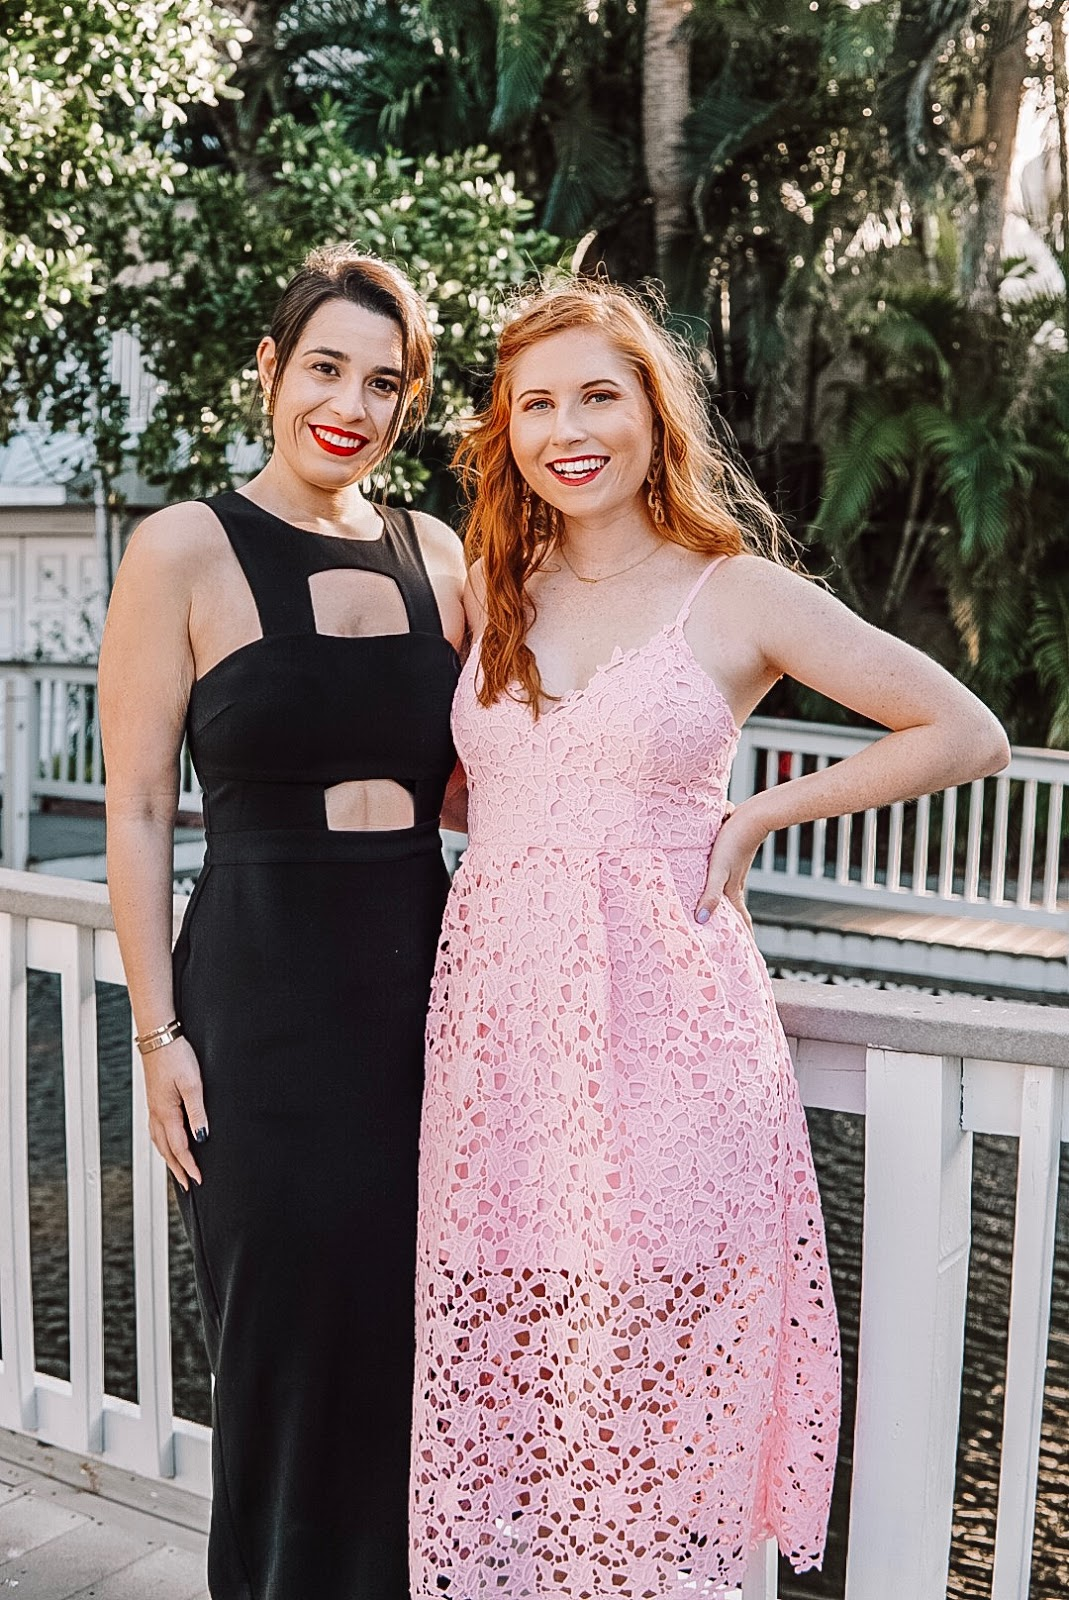 affordable by amanda blogger amanda burrows is wearing a rose astr the label lace midi dress from nordstrom for under $100 springtime dress